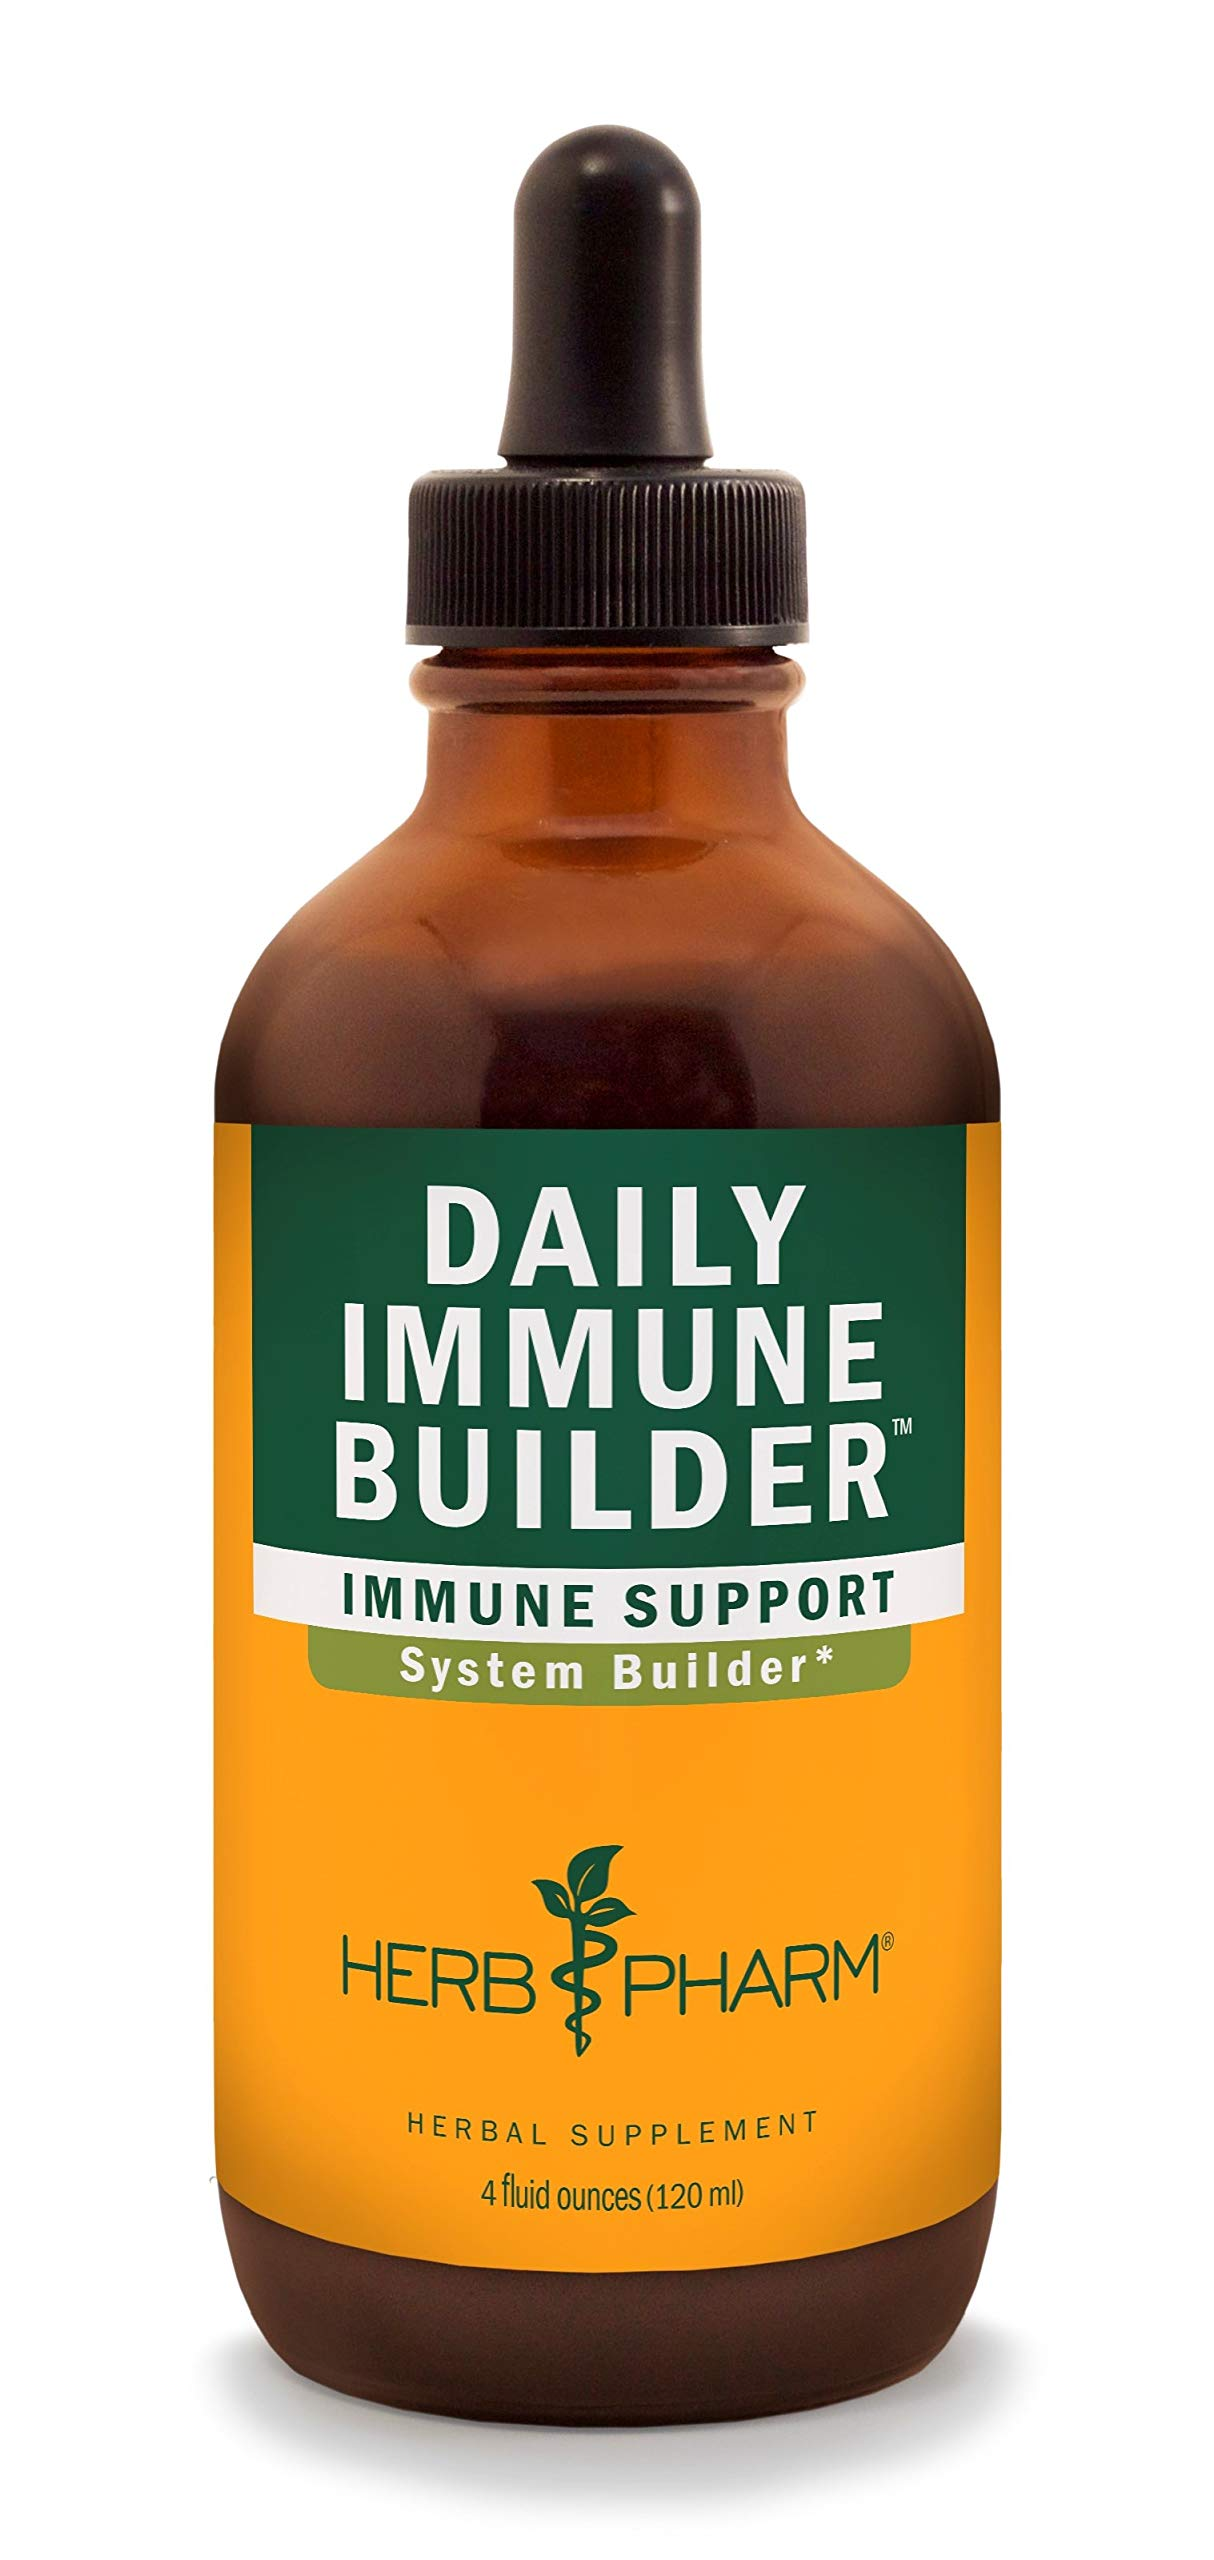 Herb Pharm Daily Immune Builder Herbal Immune System Defense Liquid - 4 Ounce